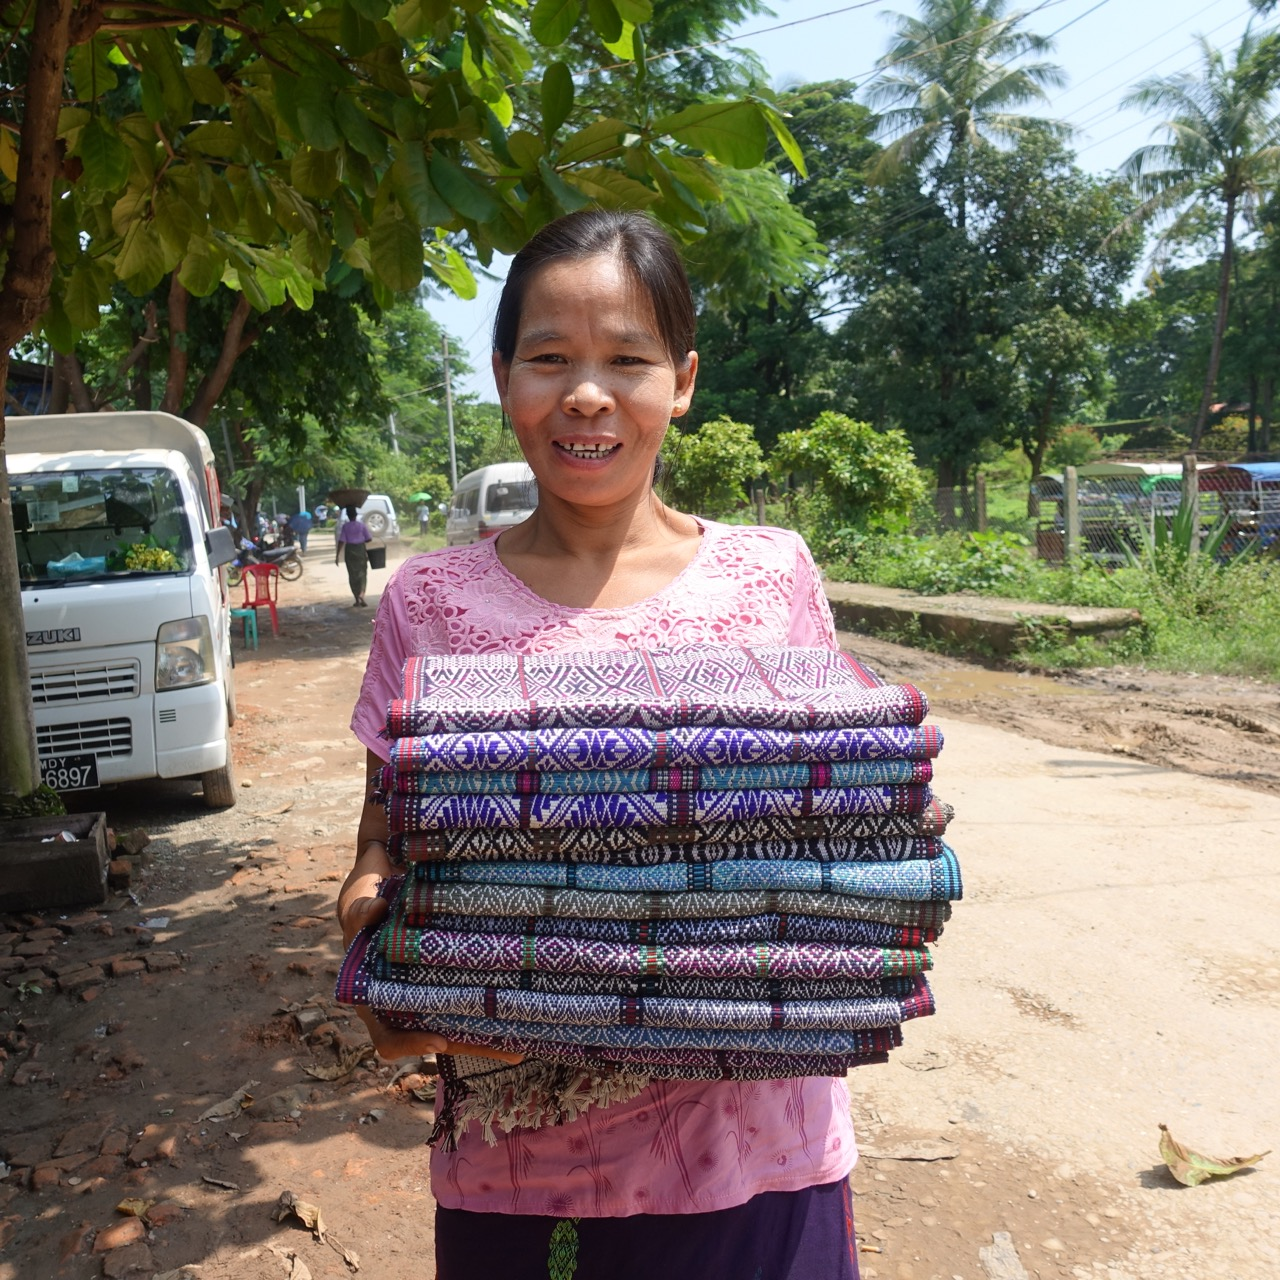 Sein Nyo Khine  was born an entrepreneur and has been working in the craft industry since she was young. She works with many weavers (often making their warps)and with jewelry makers to help them sell within the Mro community. She also collects weavings from 5 villages which she sends on to Yangon to be sold at a fair price. She lives in Kyauktaw but is originally from a small village 4 hours away in the mountains (with 2 hours of walking), she still visits there often to wildcraft materials for making natural dye!